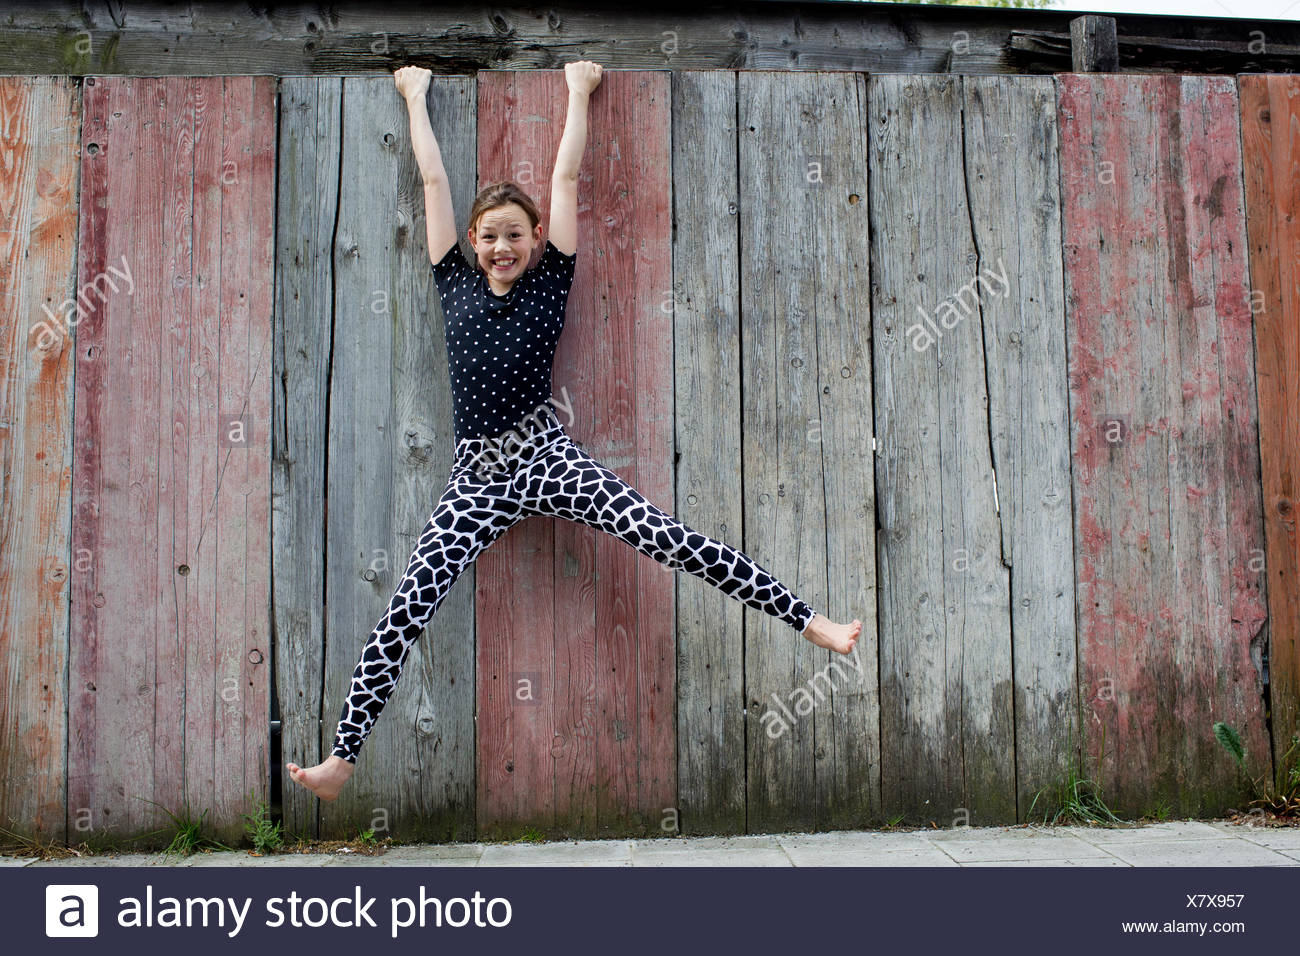 Teenage girl hanging from wooden fence Photo Stock